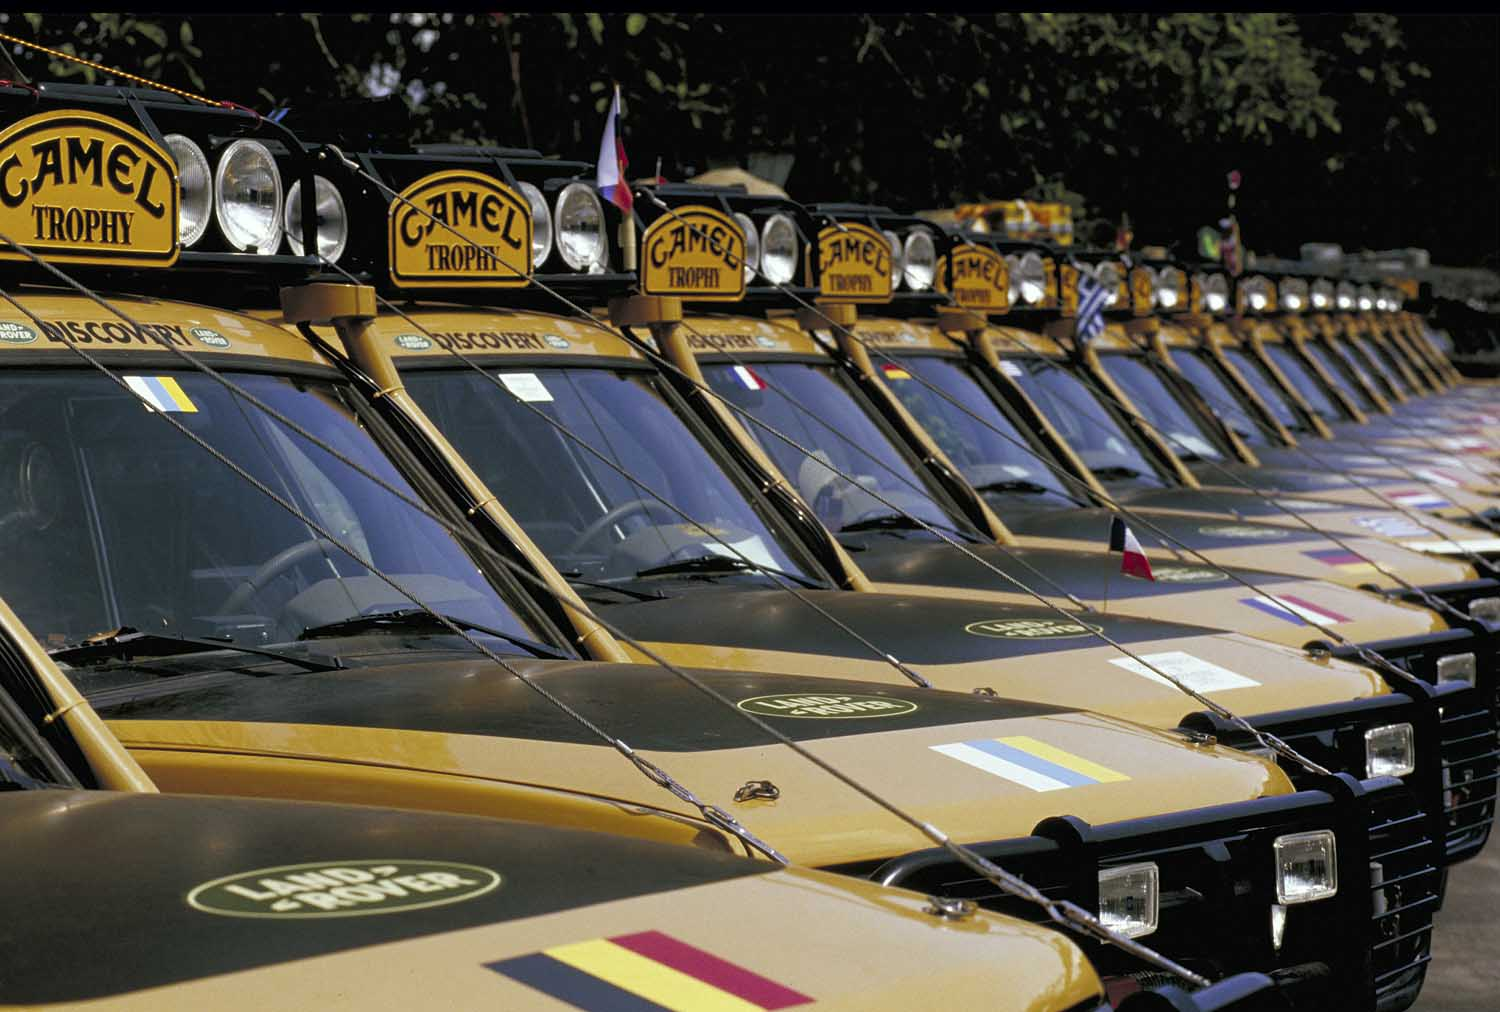 Return to Camel Trophy 021